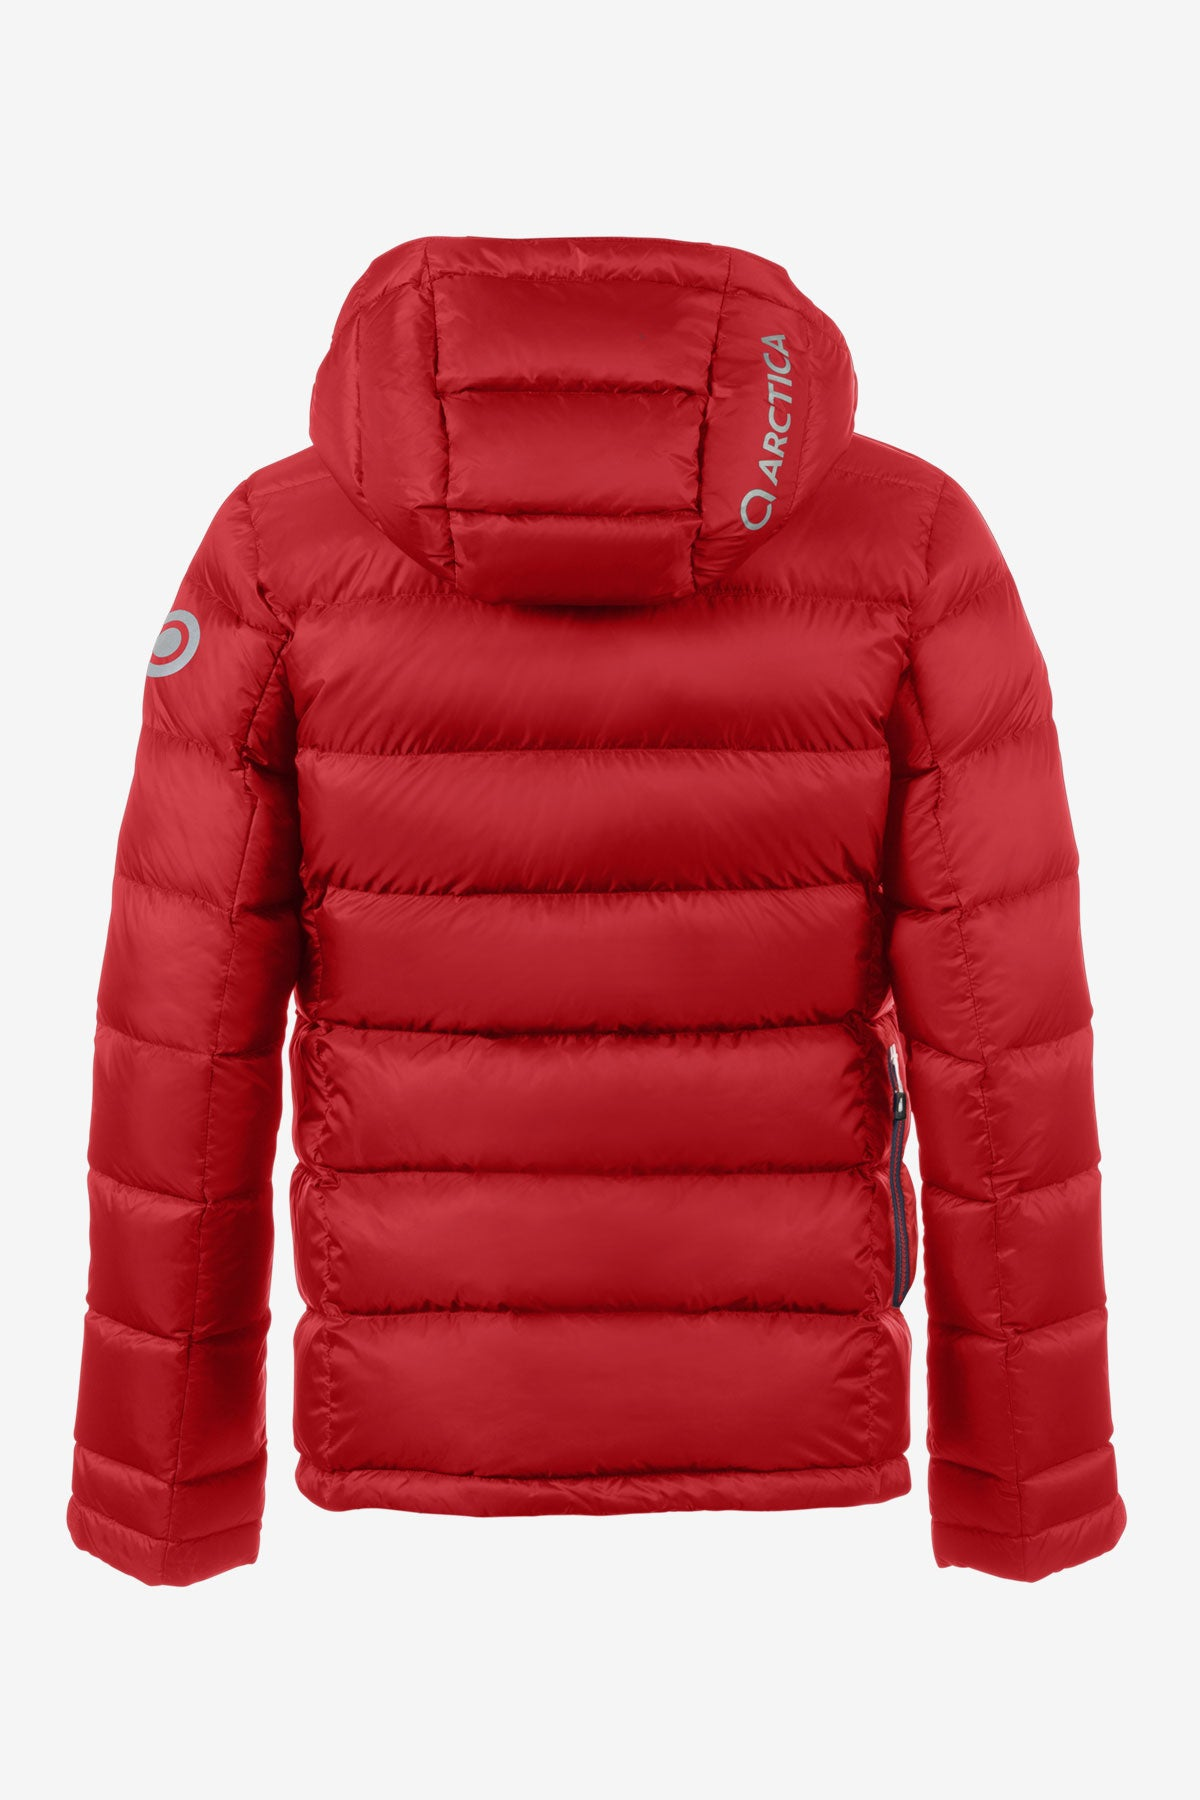 Arctica Classic Down Kids Jacket - Red (Size 10/12 left)